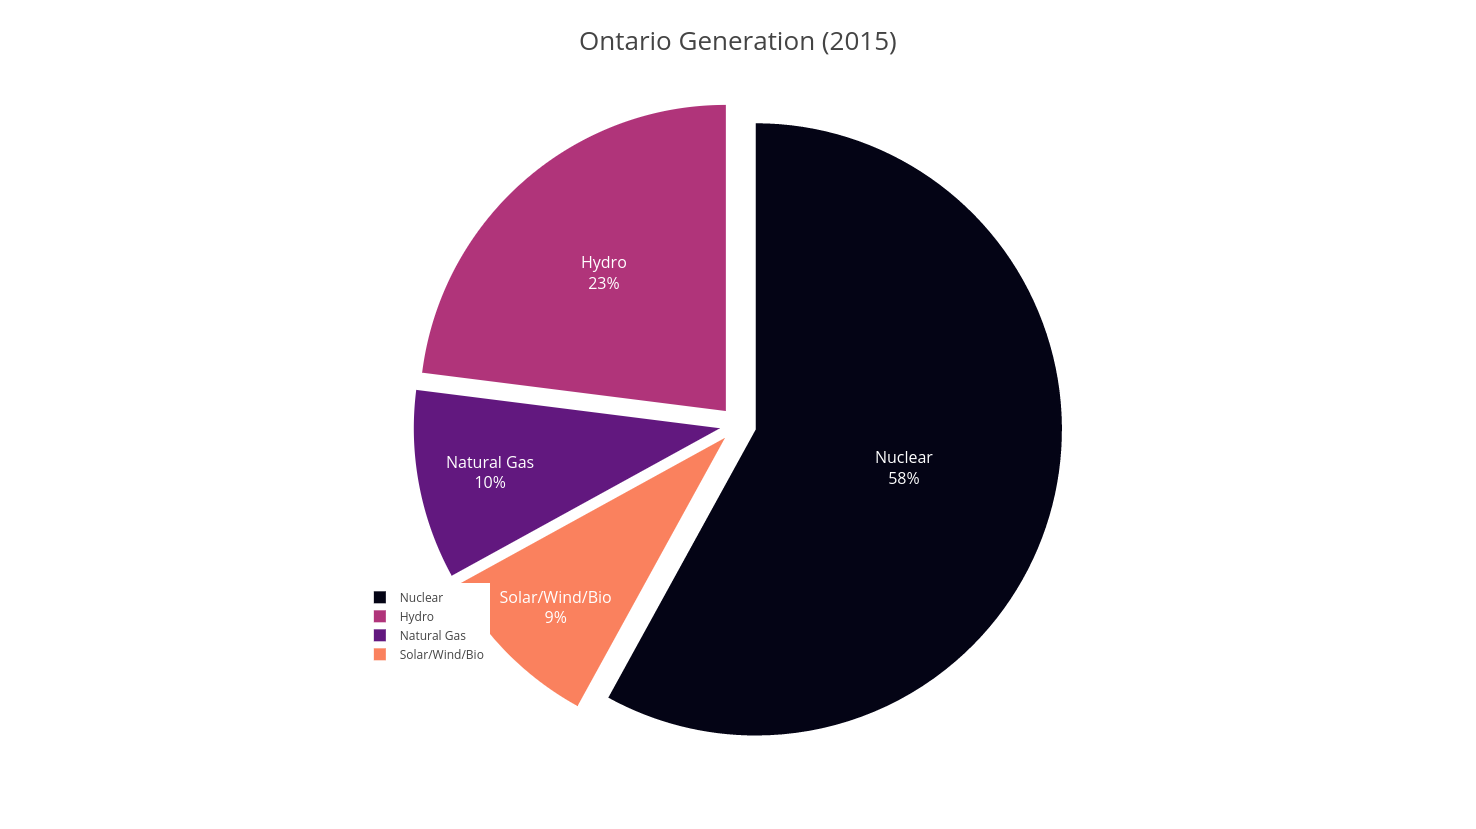 Actual generation used in Ontario (160TWh total 2015)